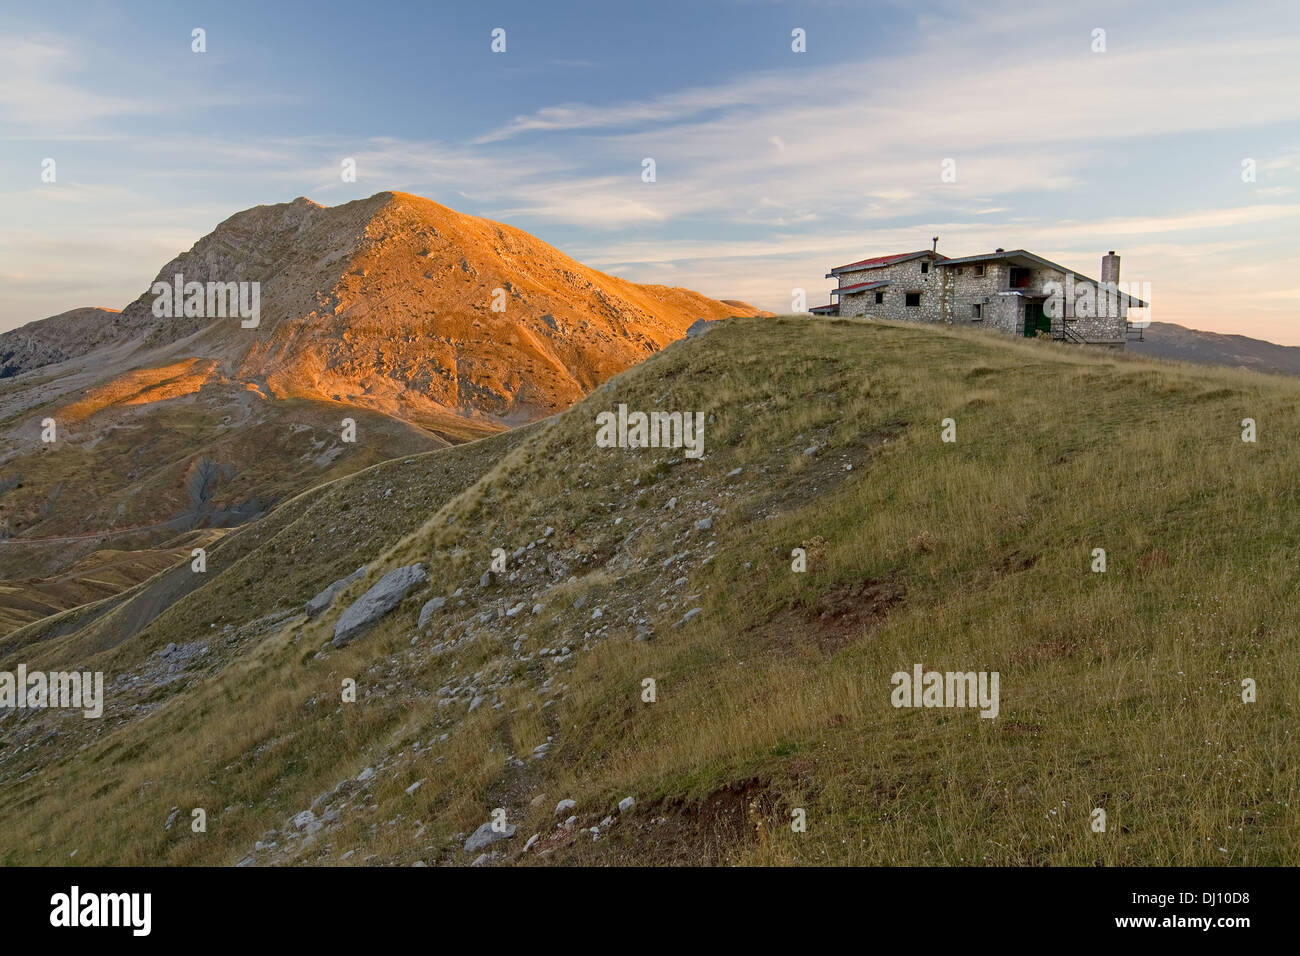 The winter shelter of Vardousia mountain, central Greece, during the early morning - Stock Image